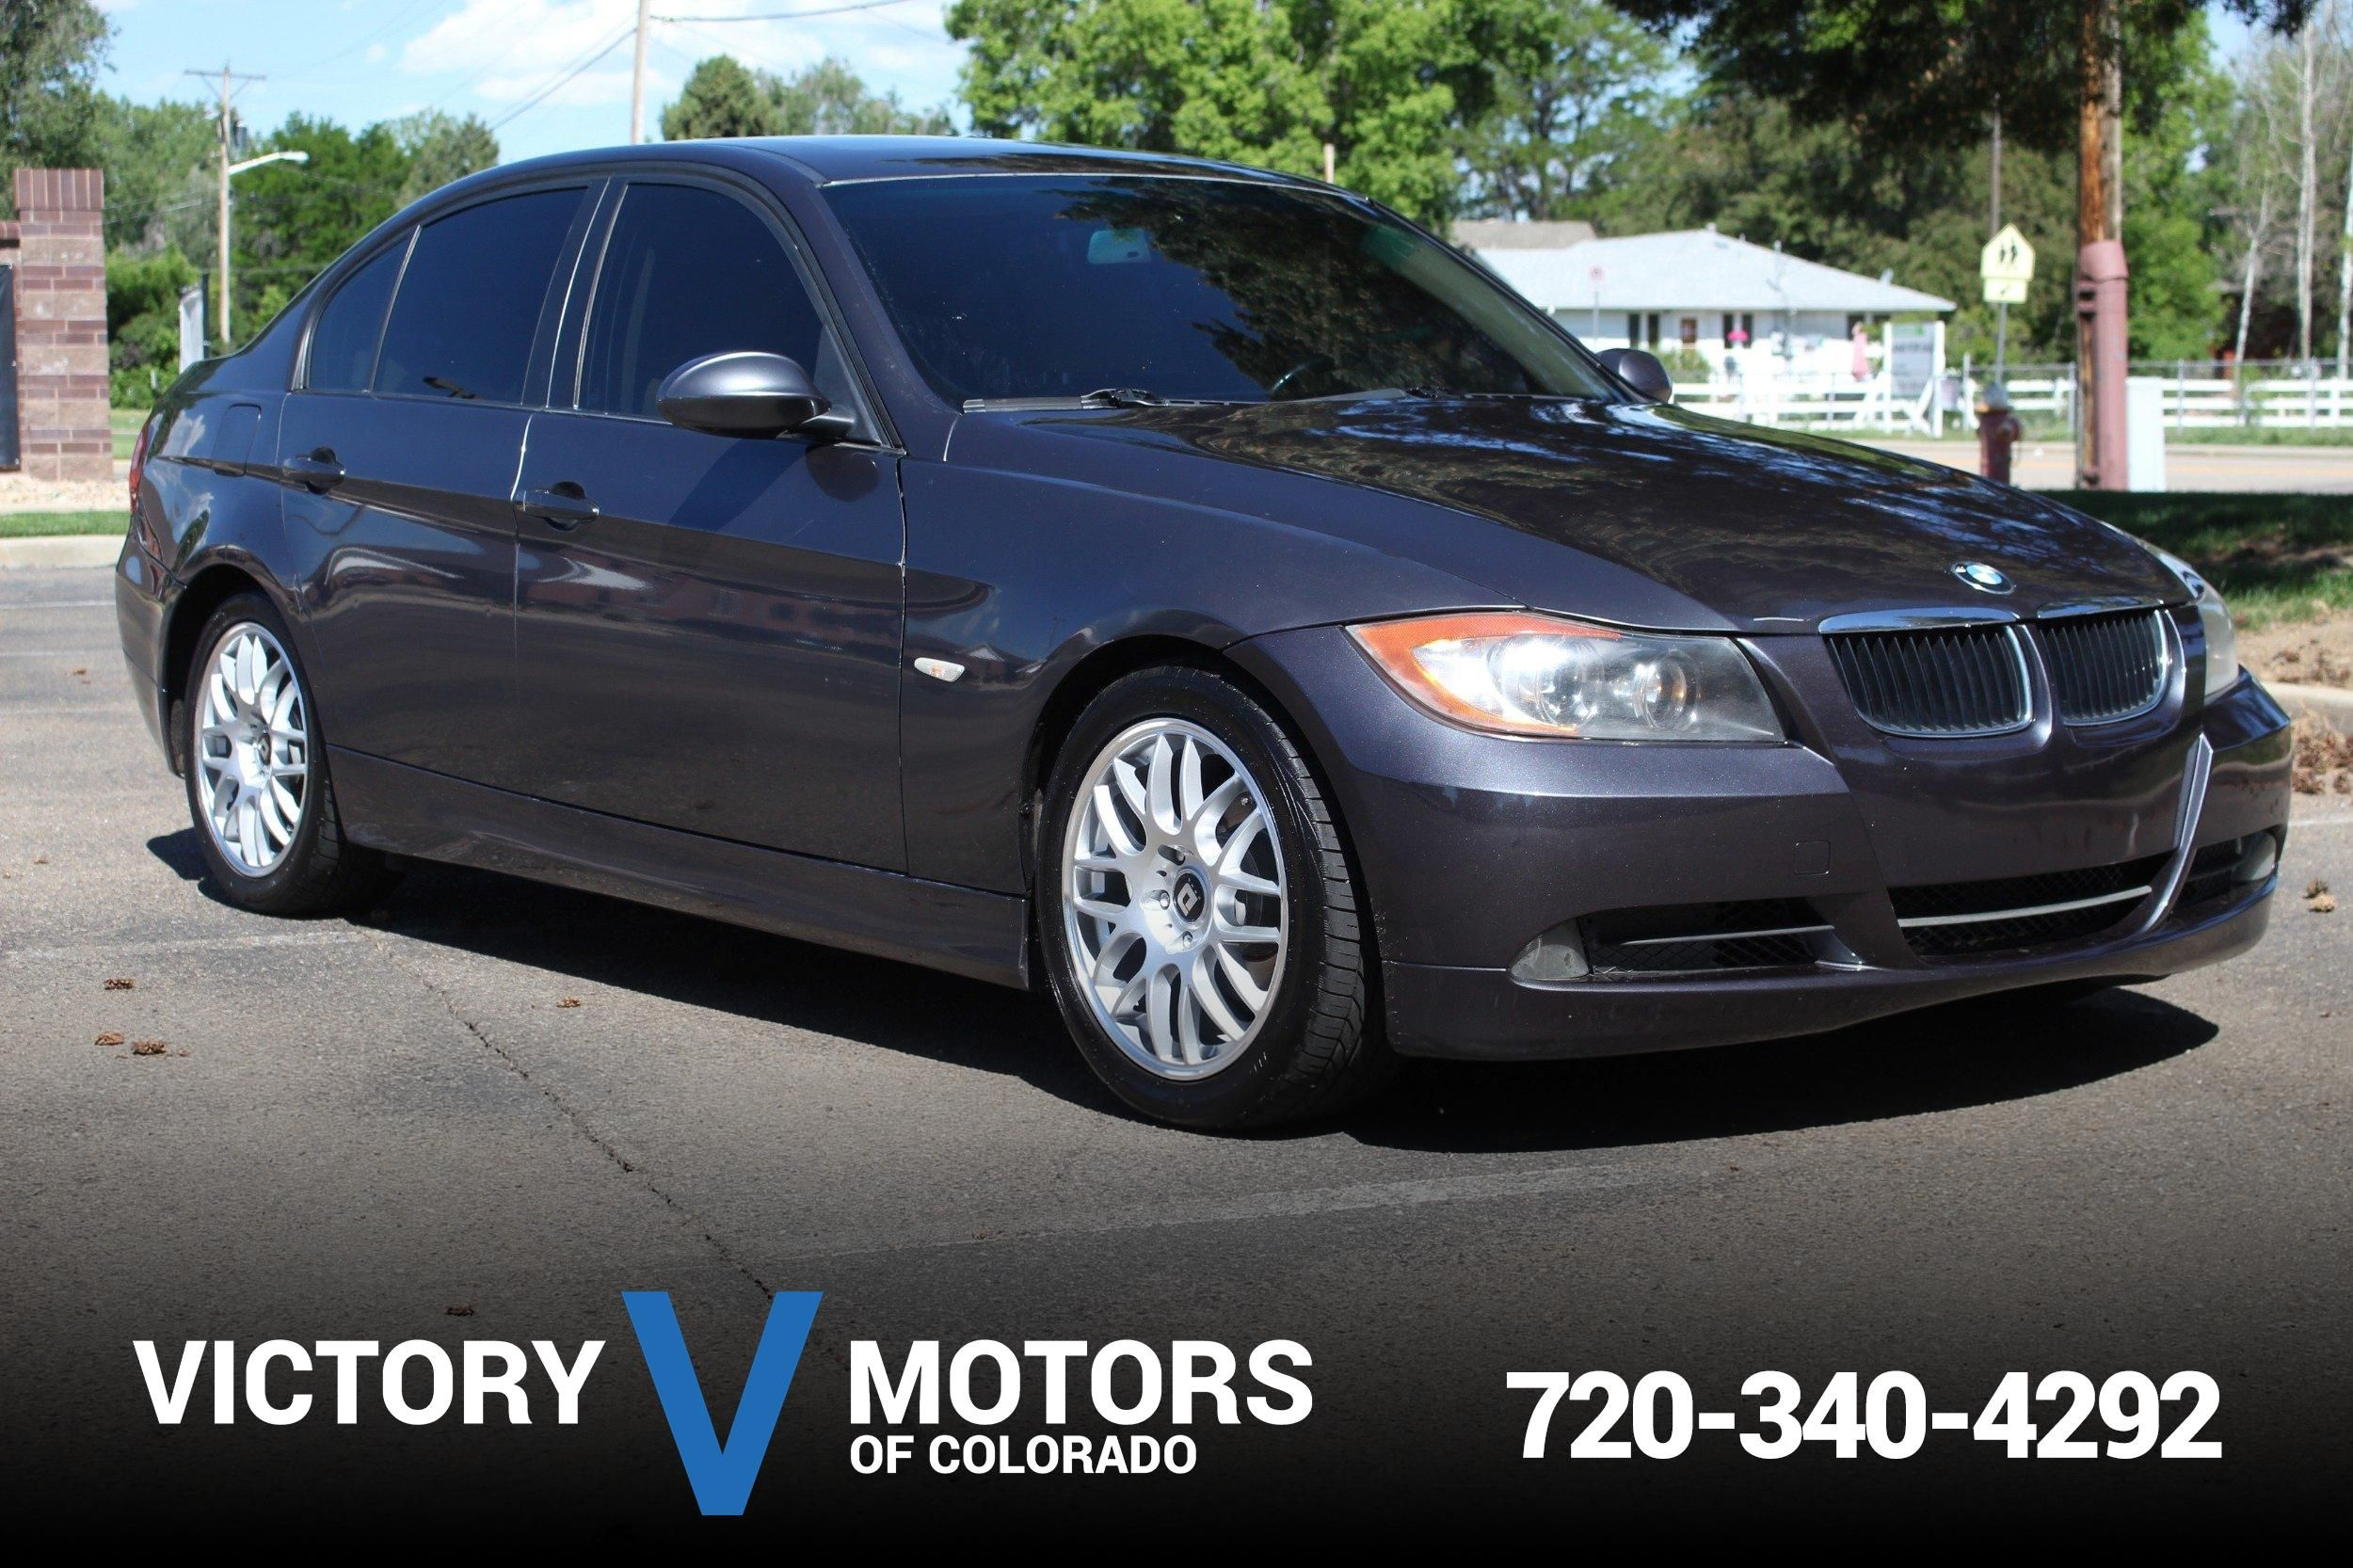 Used Cars and Trucks Longmont, CO 80501 | Victory Motors of